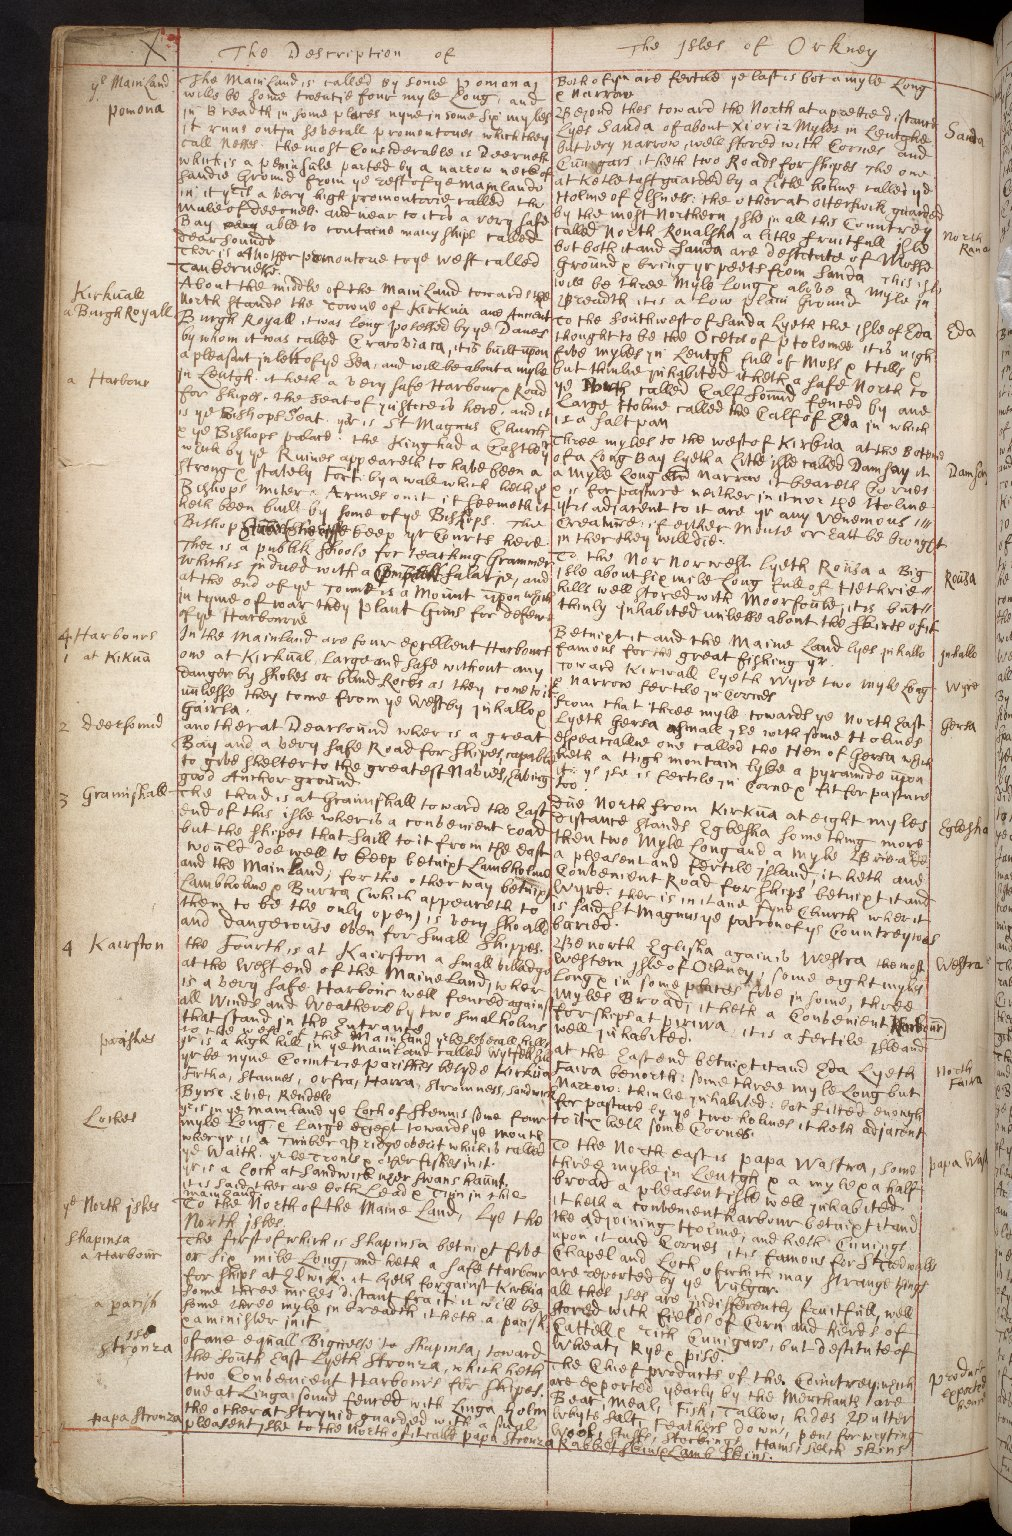 Atlas Scoticus, or a Description of Scotland Ancient and Modern. [240 of 259]